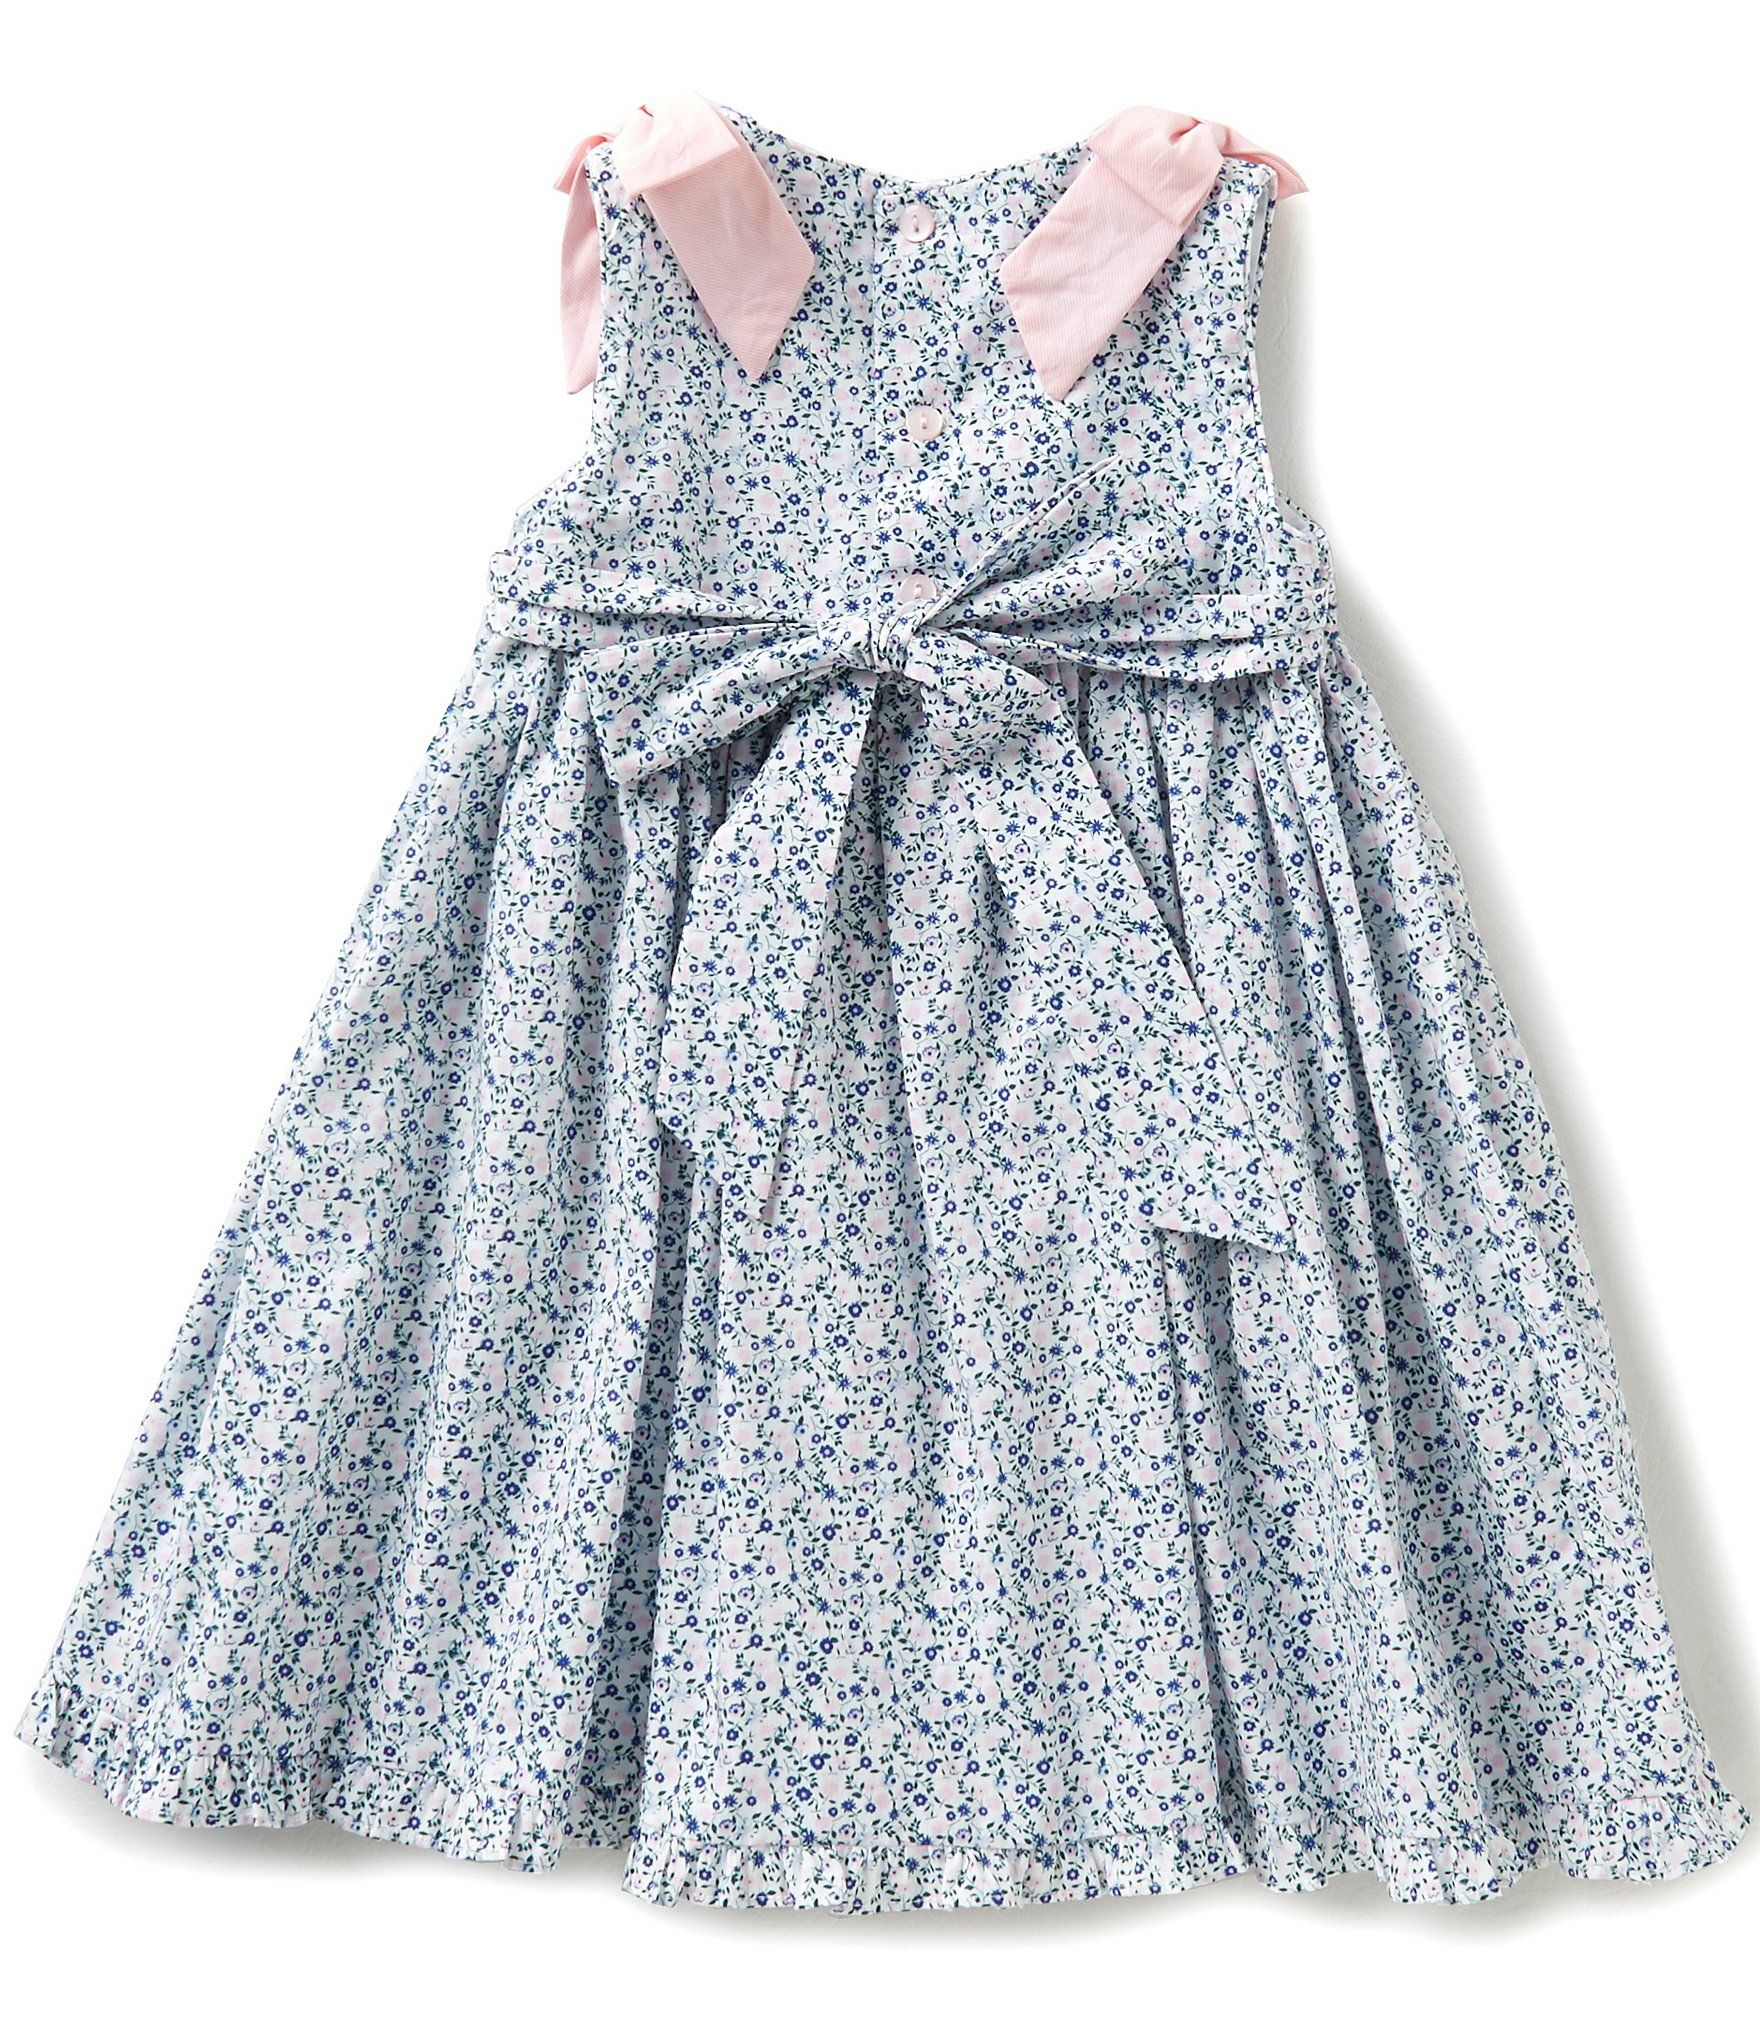 e04438efc2e Shop for Edgehill Collection Baby Girls 12-24 Months Embroidered Ditsy  Floral-Print Dress at Dillards.com. Visit Dillards.com to find clothing